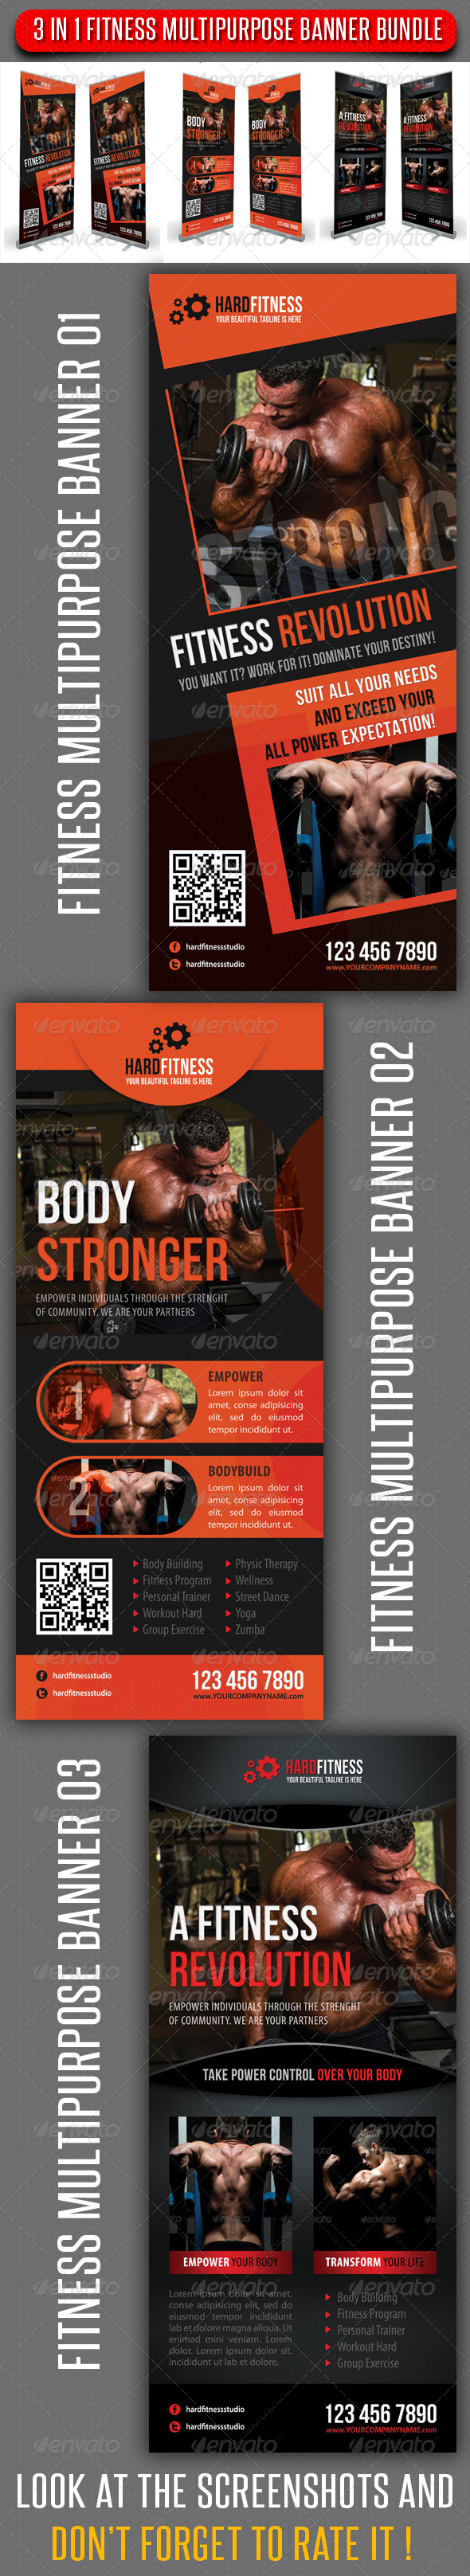 3 in 1 Fitness Multipurpose Banner Bundle 02 - Signage Print Templates